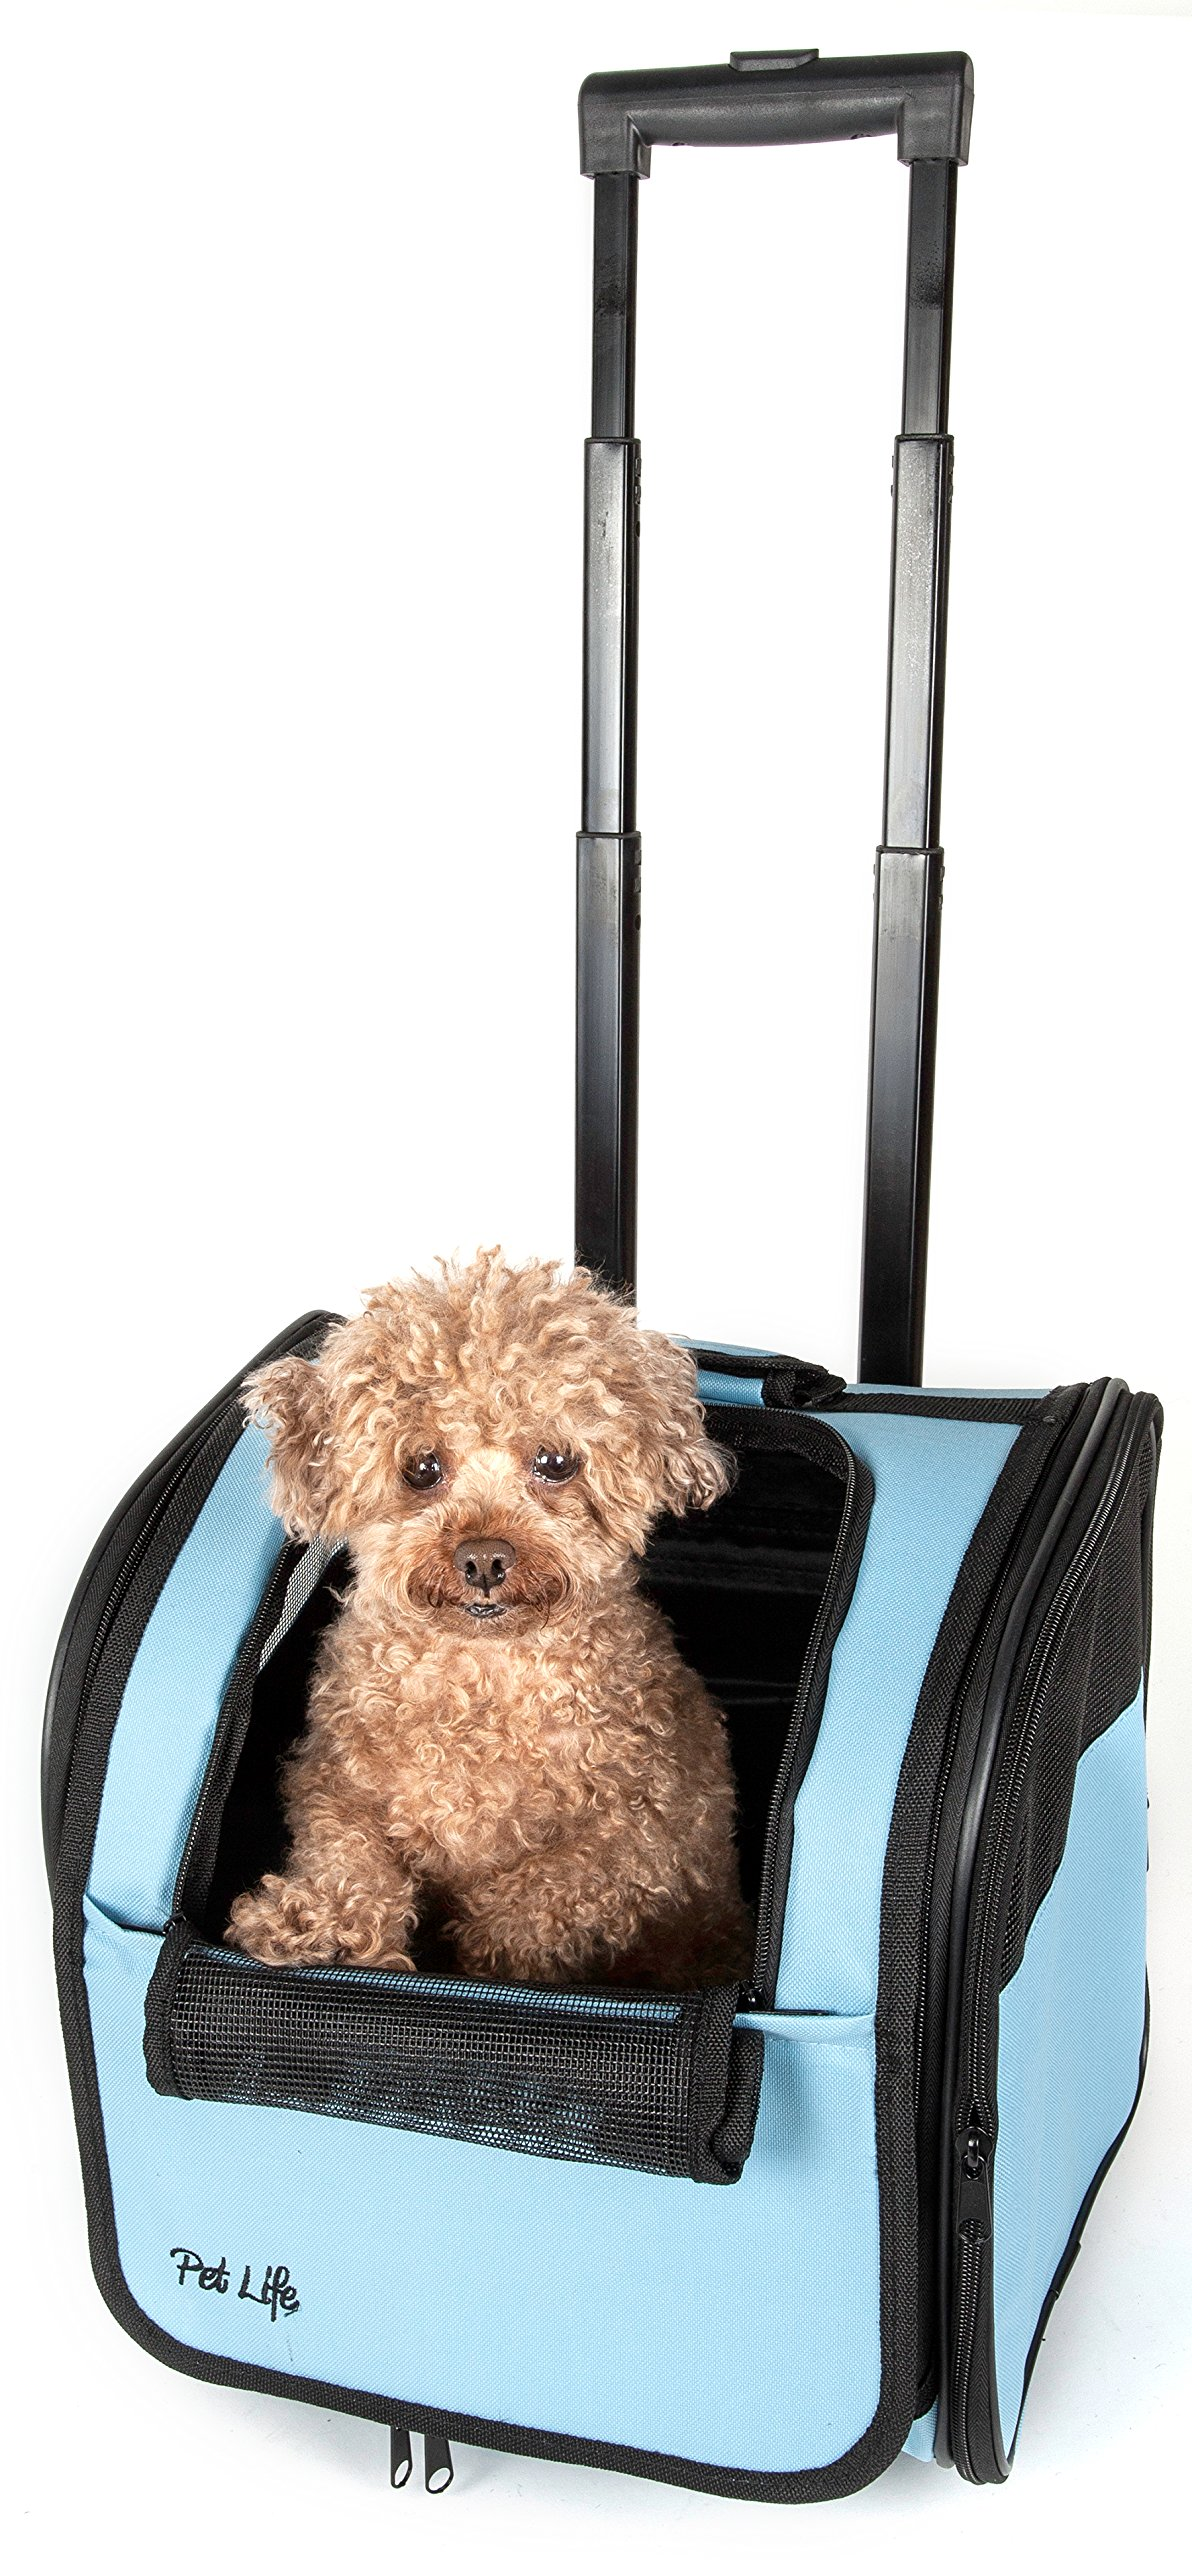 PET LIFE Wheeled Collapsible Breathable Airline Approved Travel Pet Dog Carrier, One Size, Blue